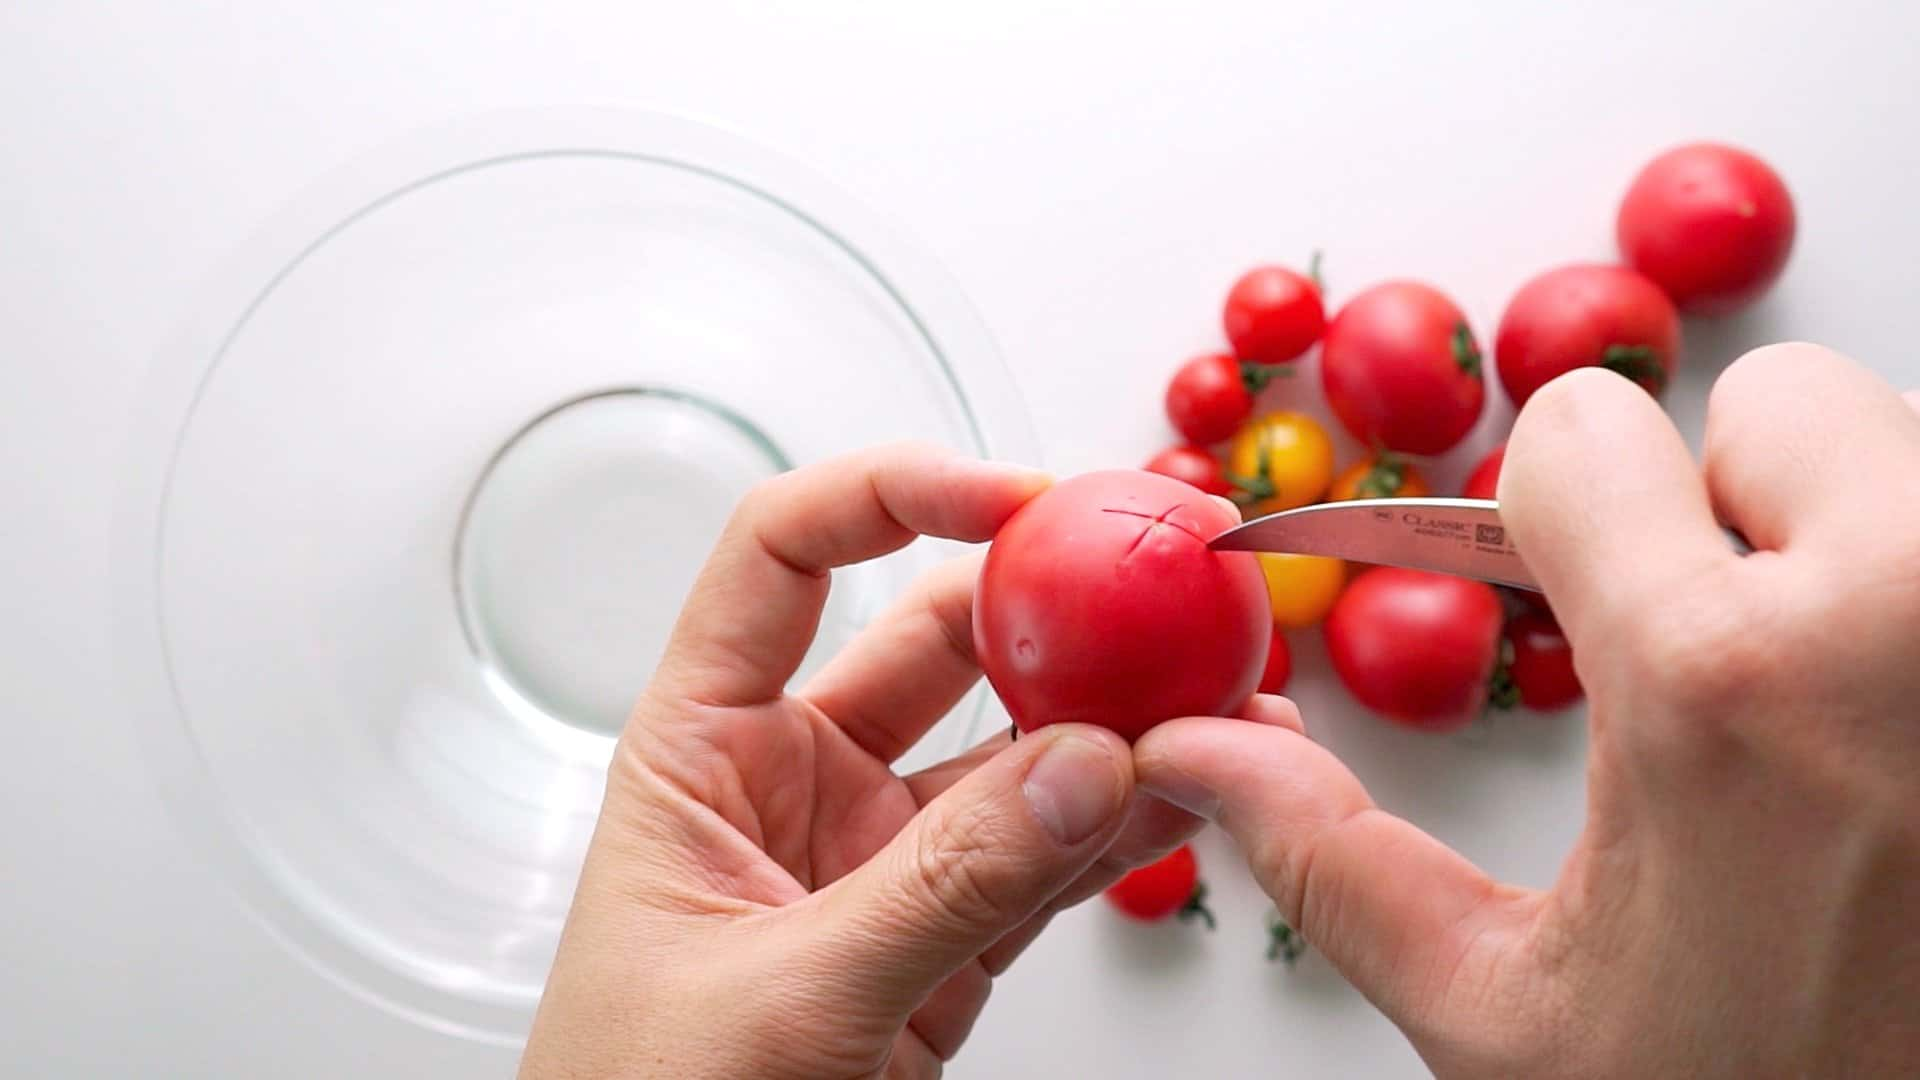 Score the tomato skin using a paring knife.